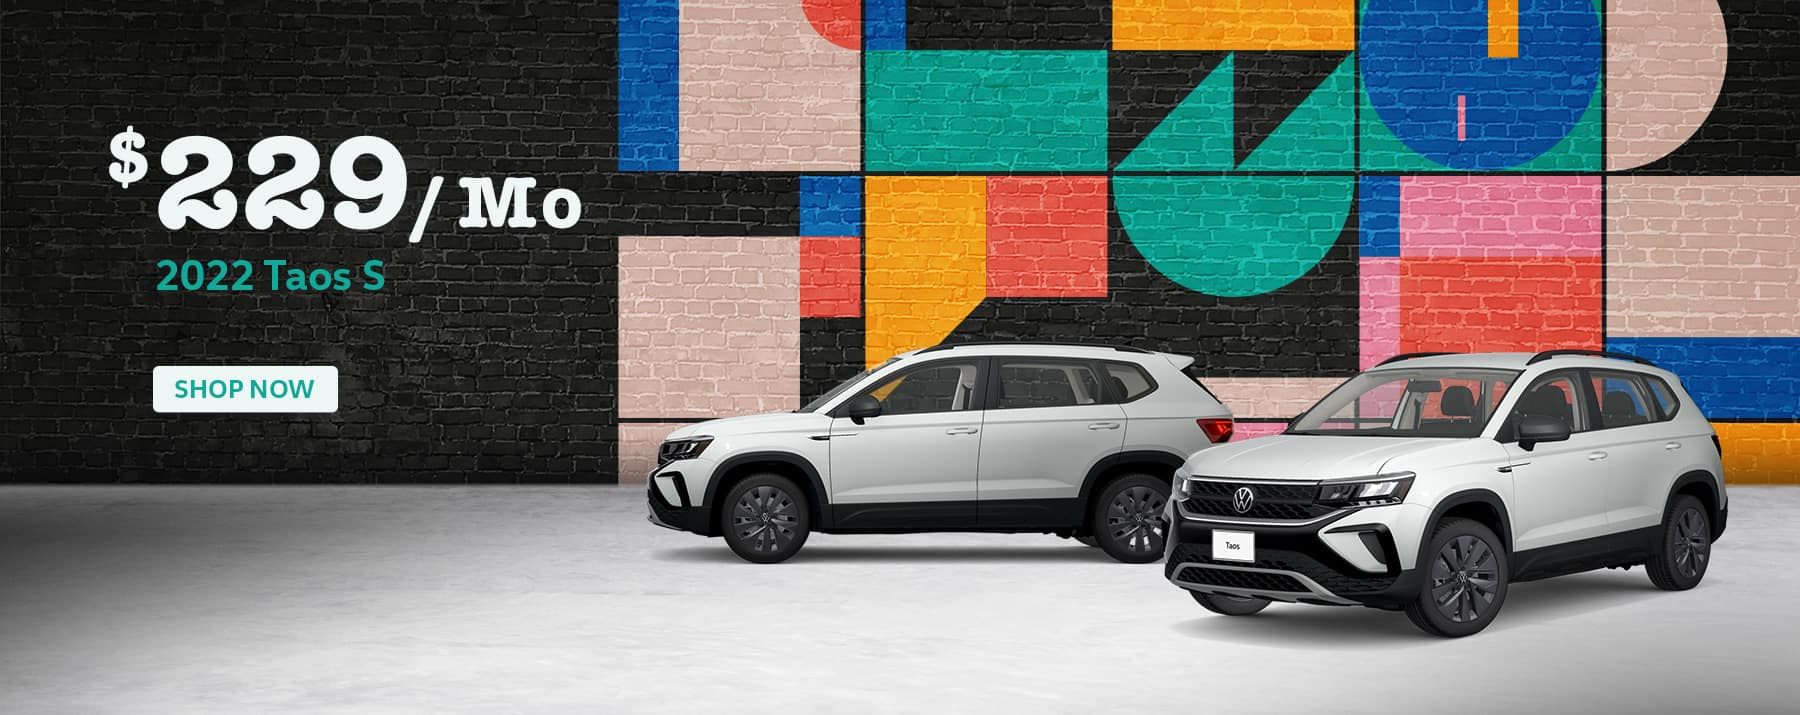 2022 VW Taos Special